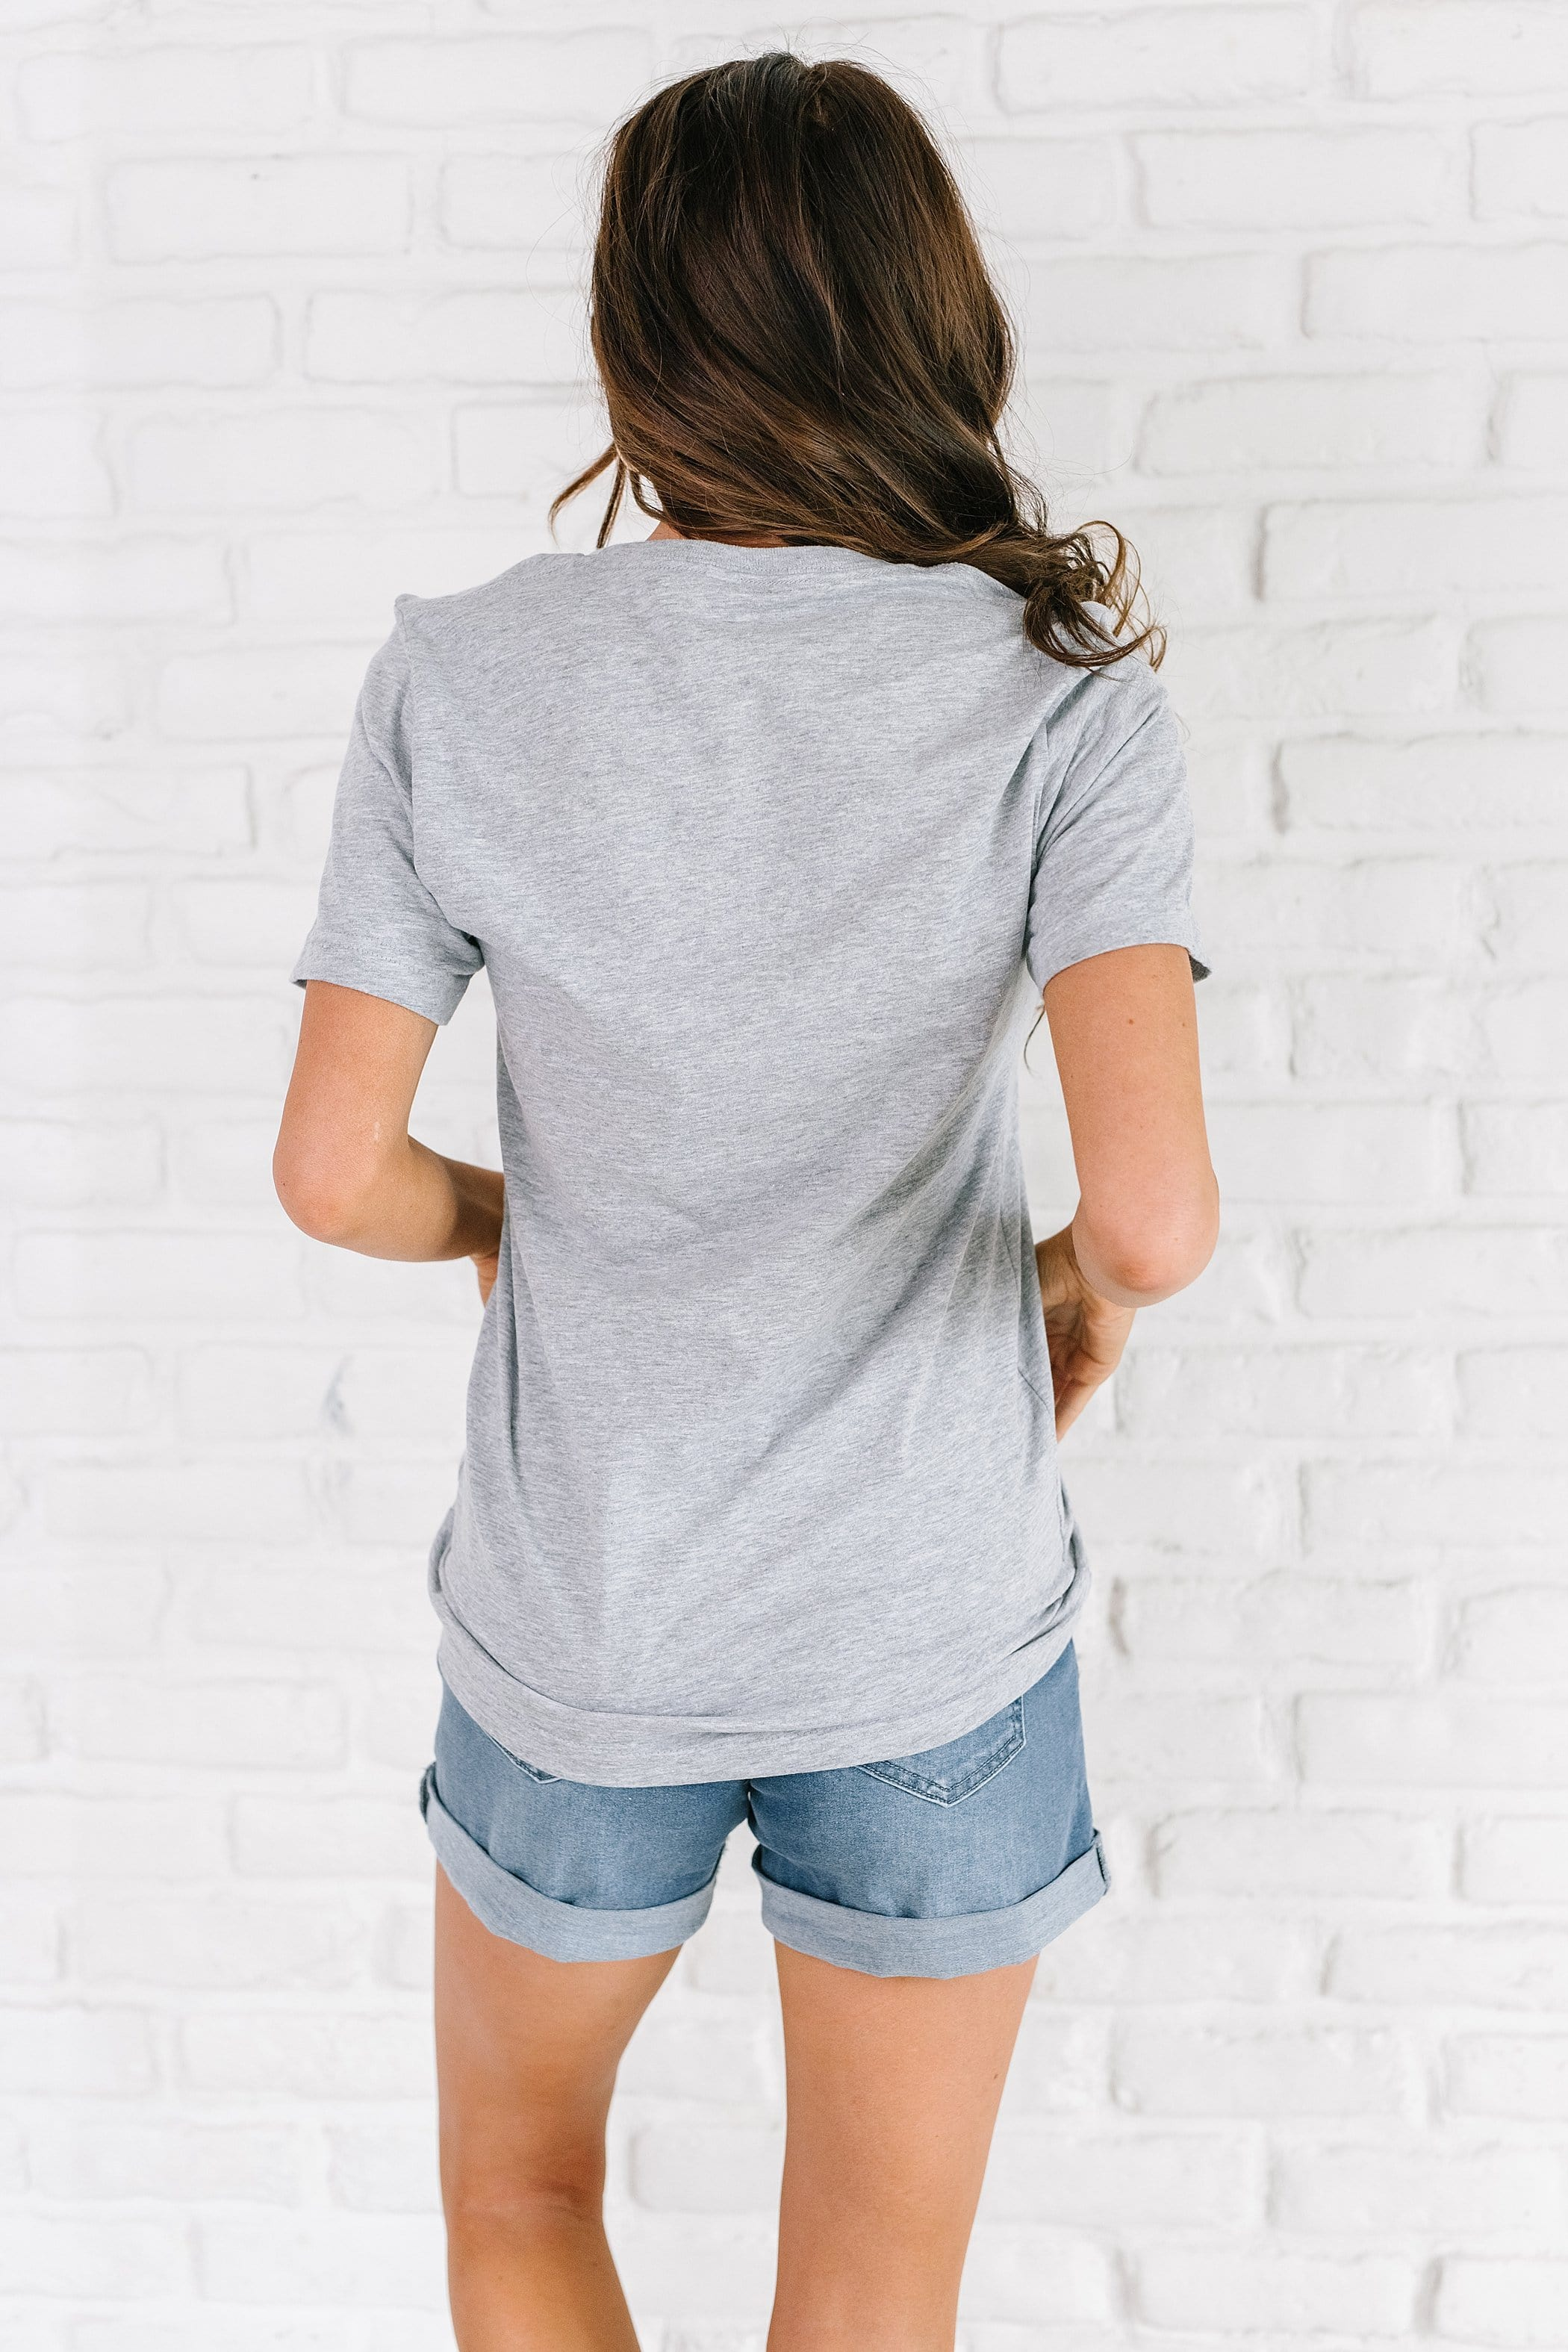 The Flag Lips Graphic Top in Heather Grey